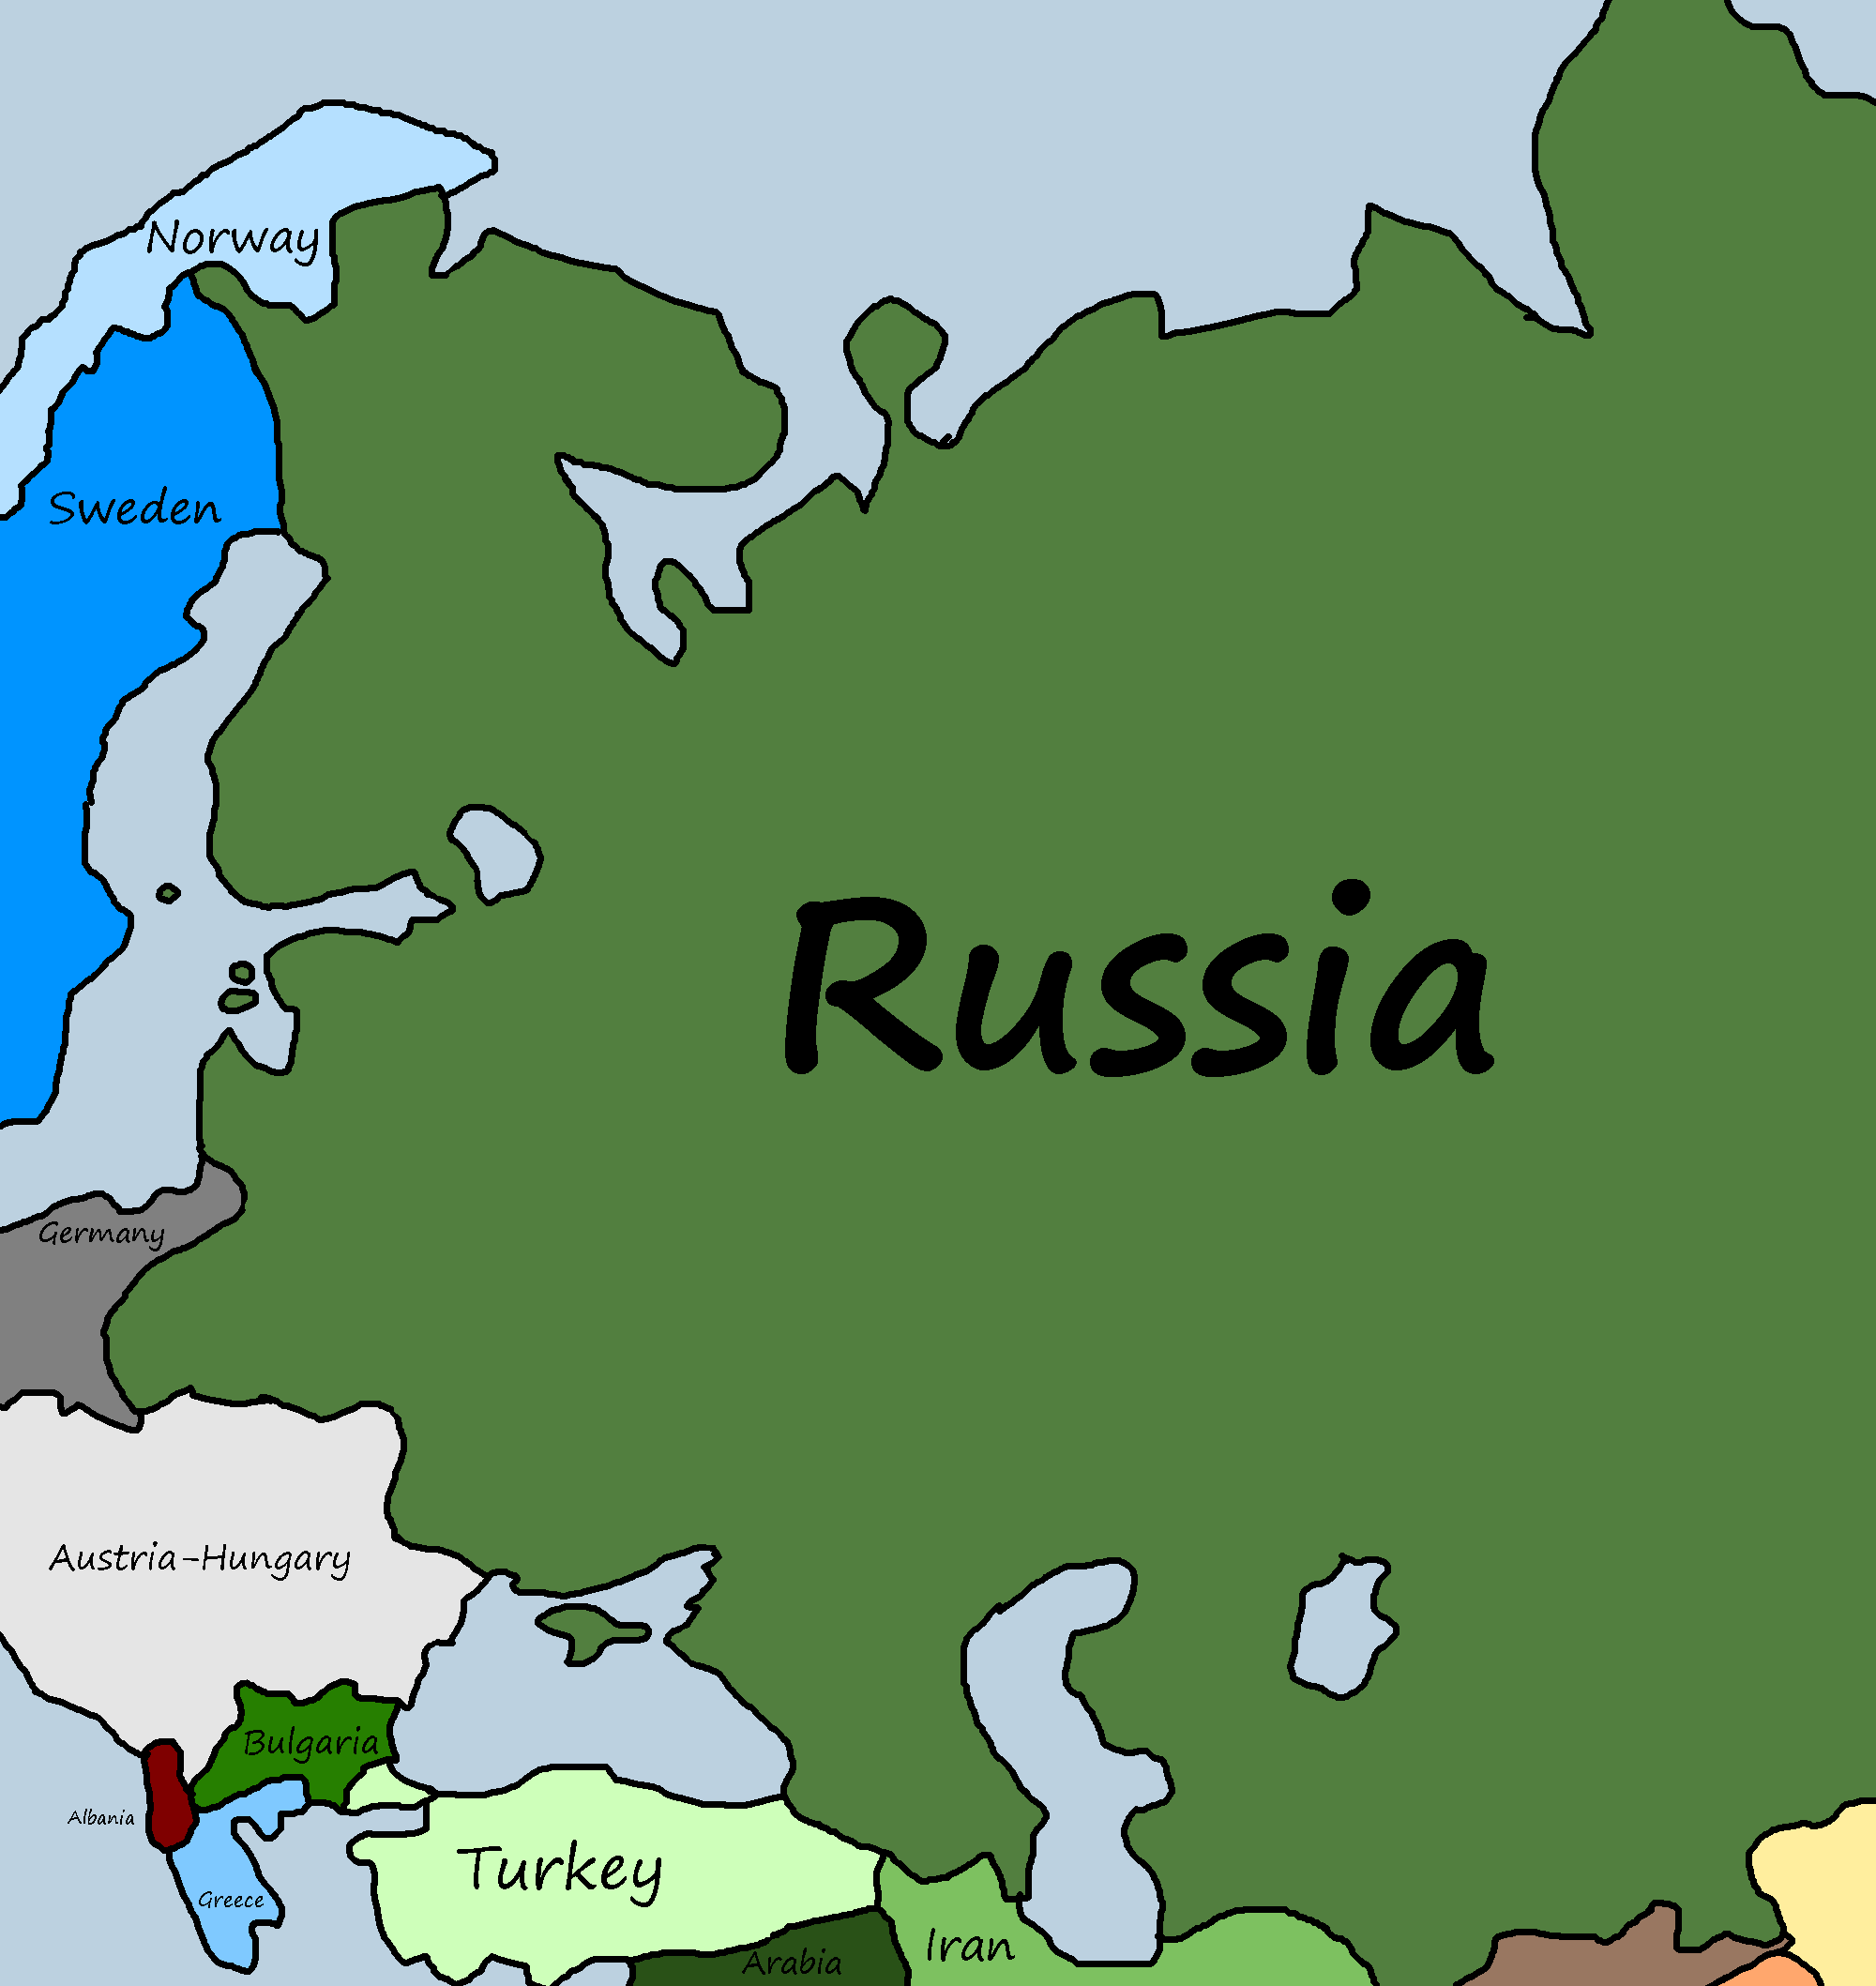 First Russian Empire (Survival of the Tsars)